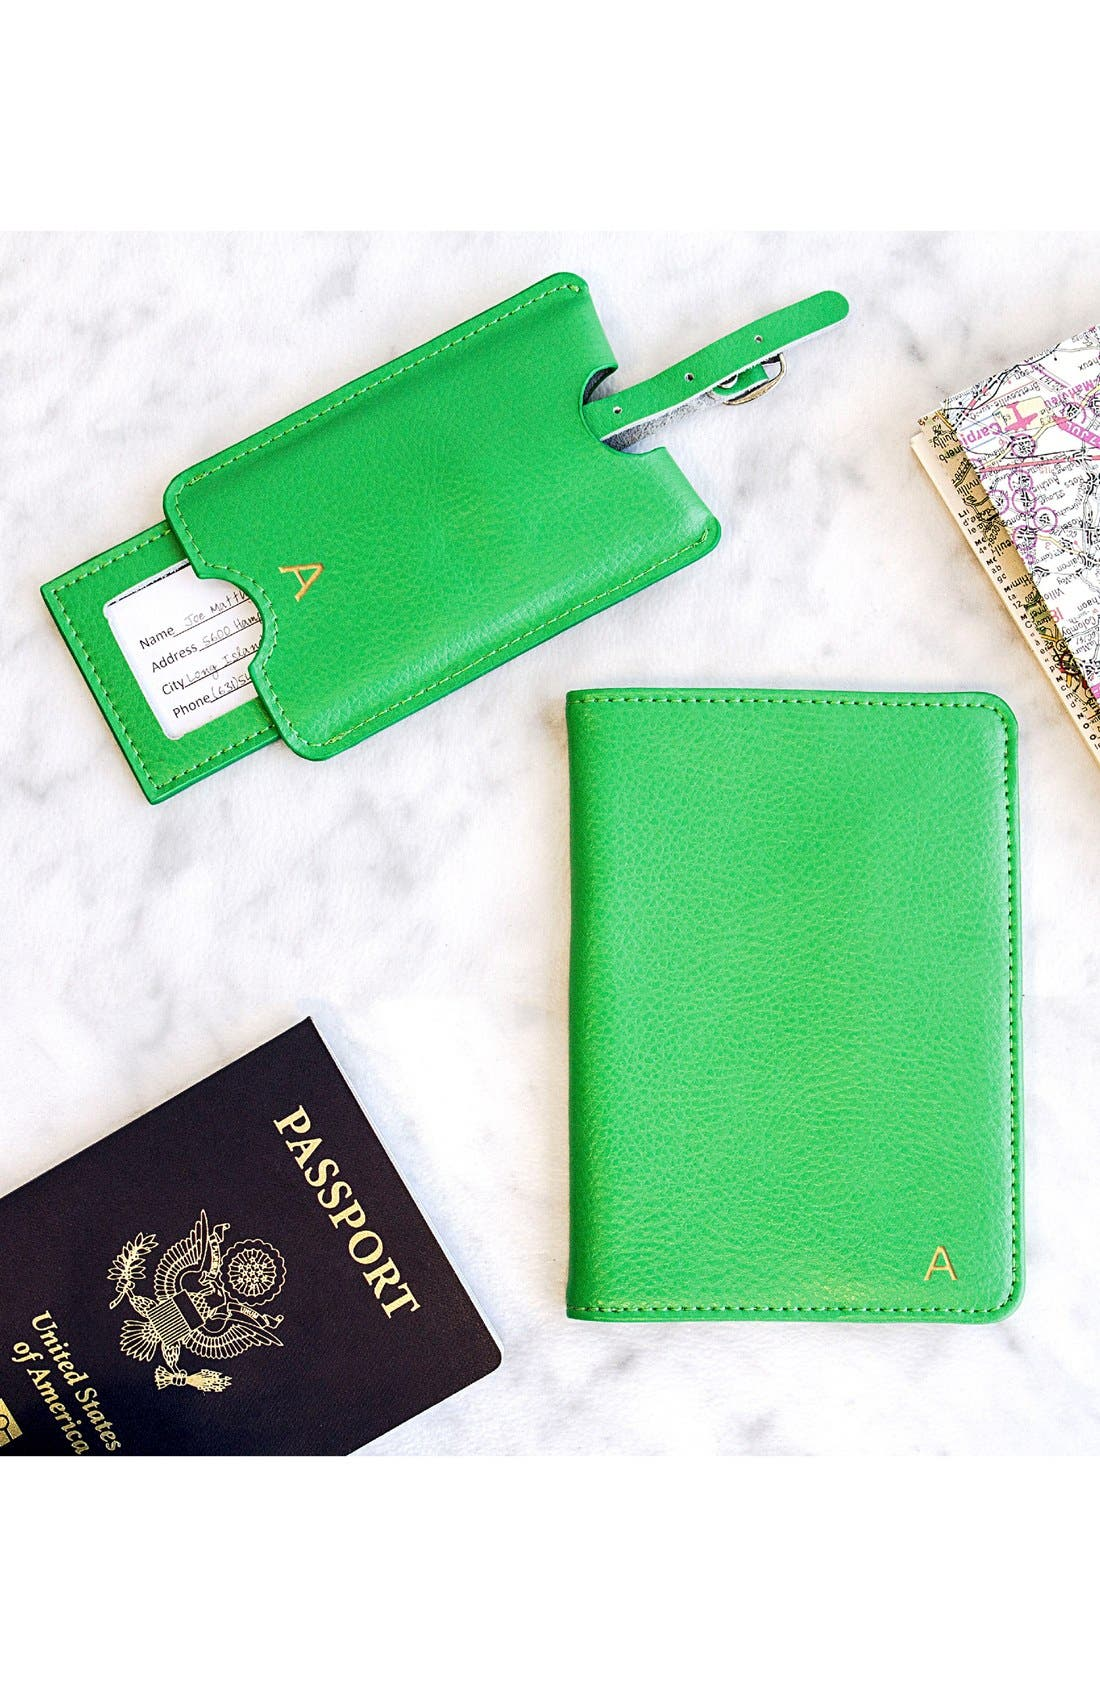 CATHY'S CONCEPTS,                             Monogram Passport Case & Luggage Tag,                             Alternate thumbnail 4, color,                             200